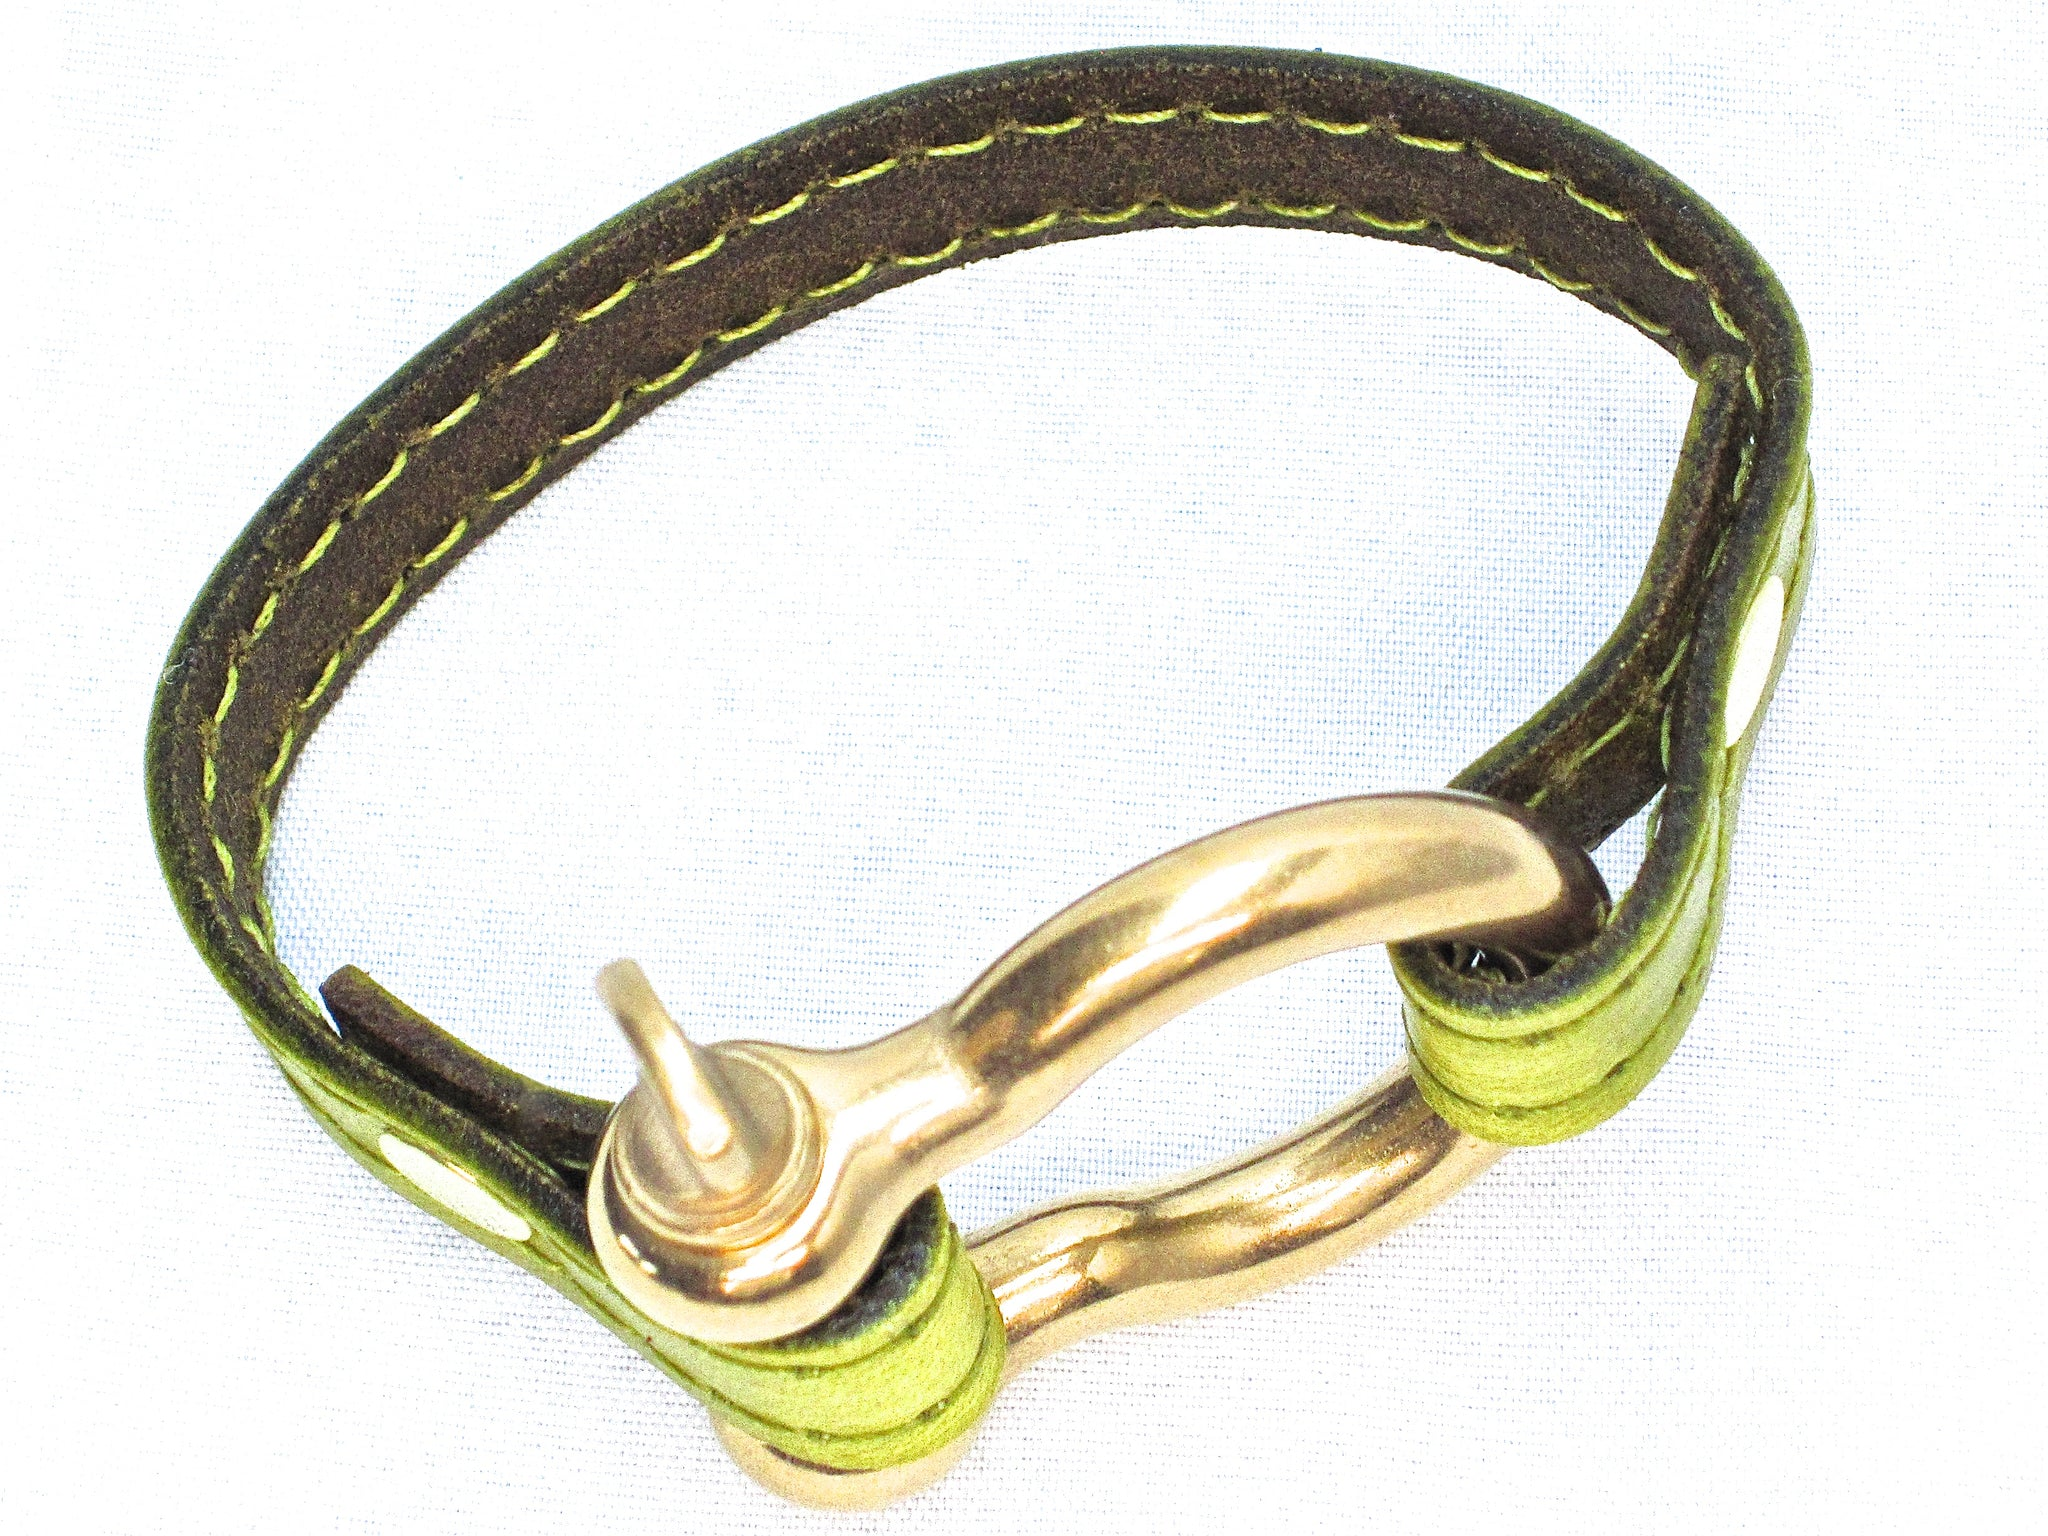 Nyet jewelry Signature Gold Bracelet Chartreuse by nyet jewelry